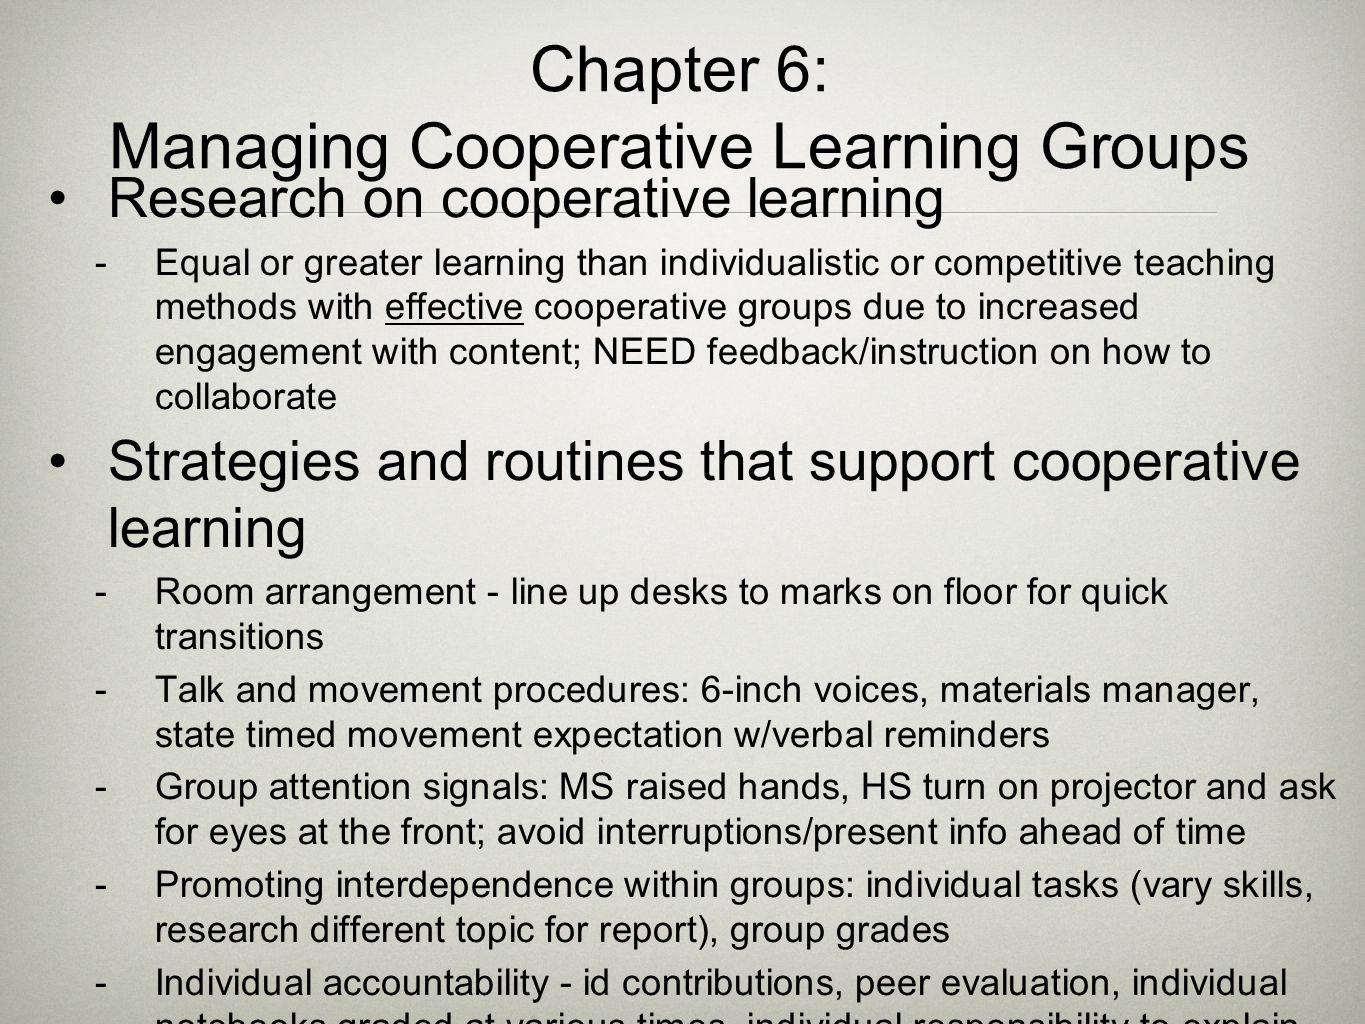 Chapter 6: Managing Cooperative Learning Groups